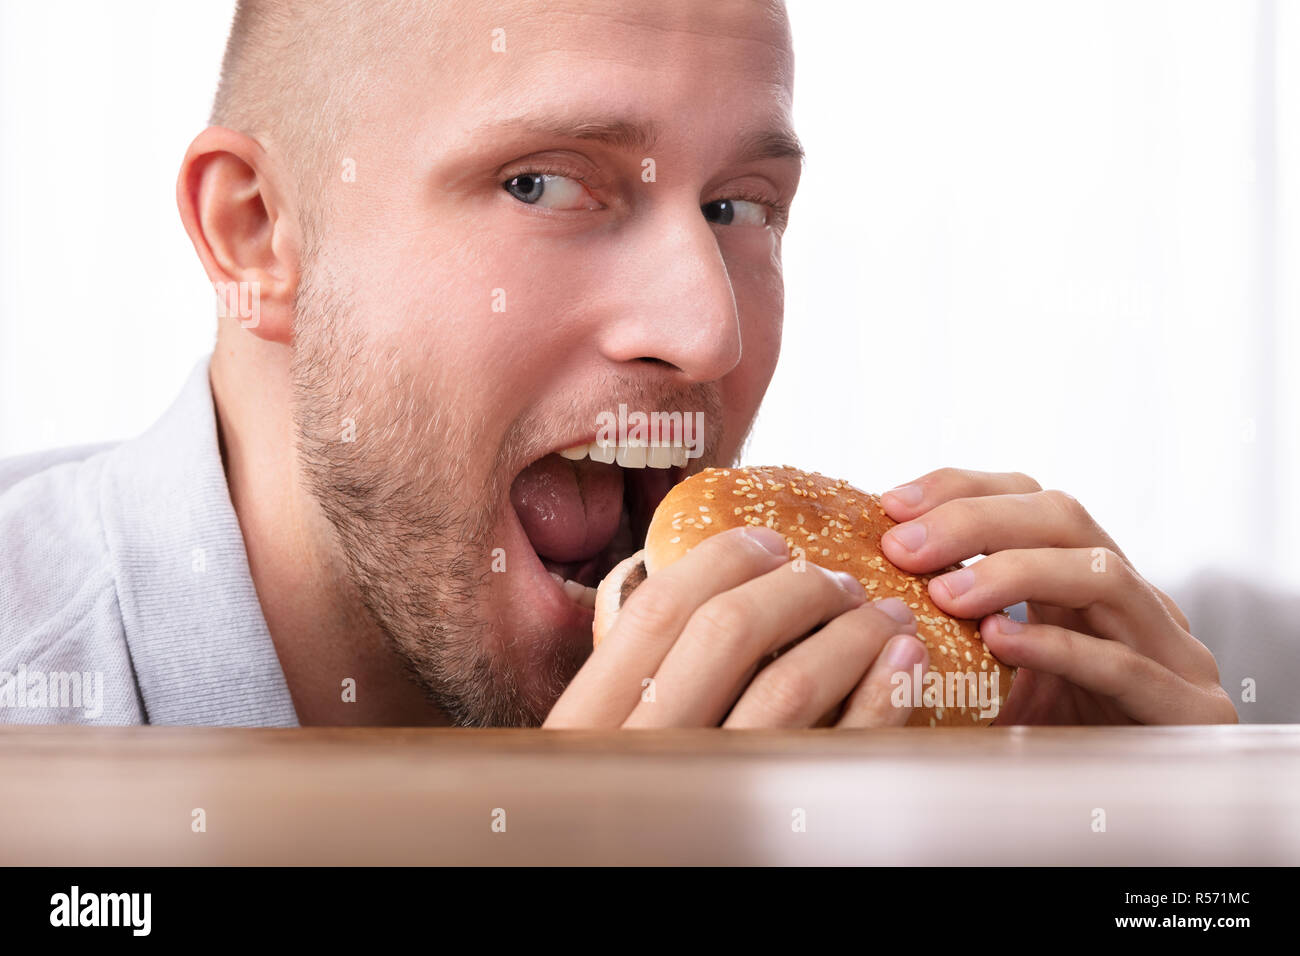 Portrait Of A Greedy Young Man Eating Burger - Stock Image